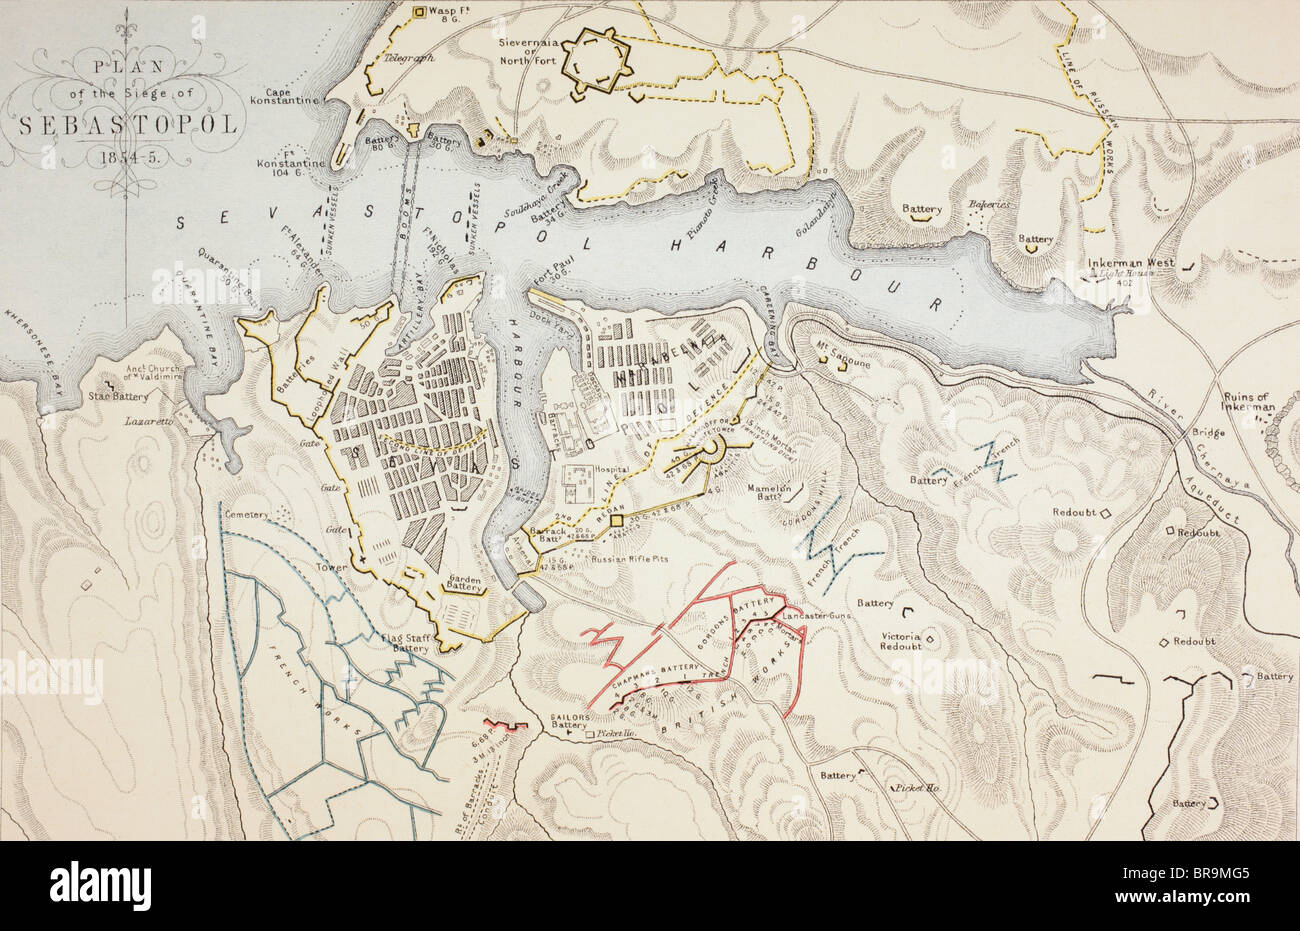 Plan of The Siege of Sevastopol, 1854 to 1855. - Stock Image